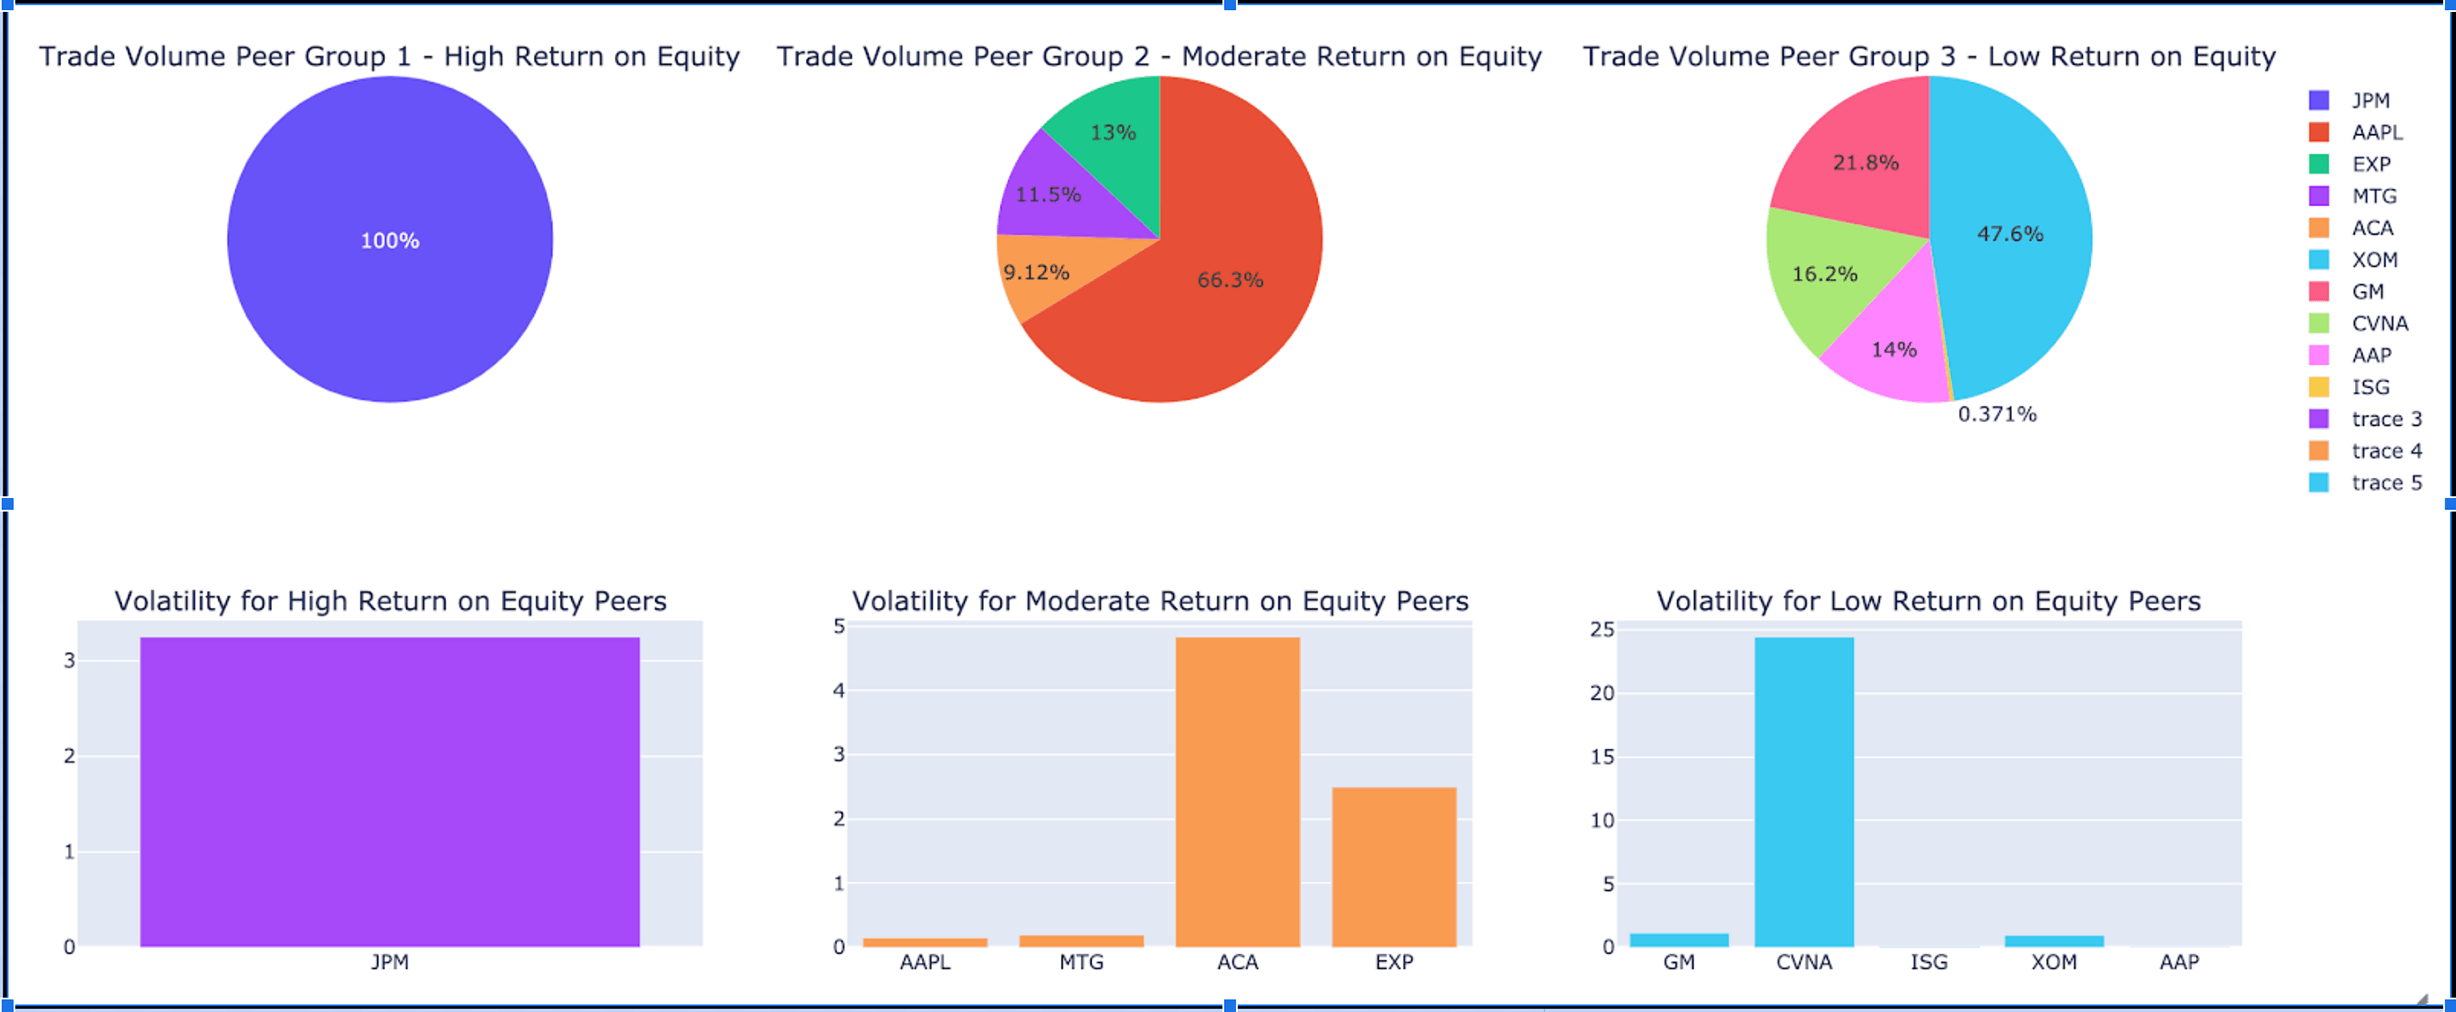 dashboards unifying fundamental and technical analysis using AI techniques.